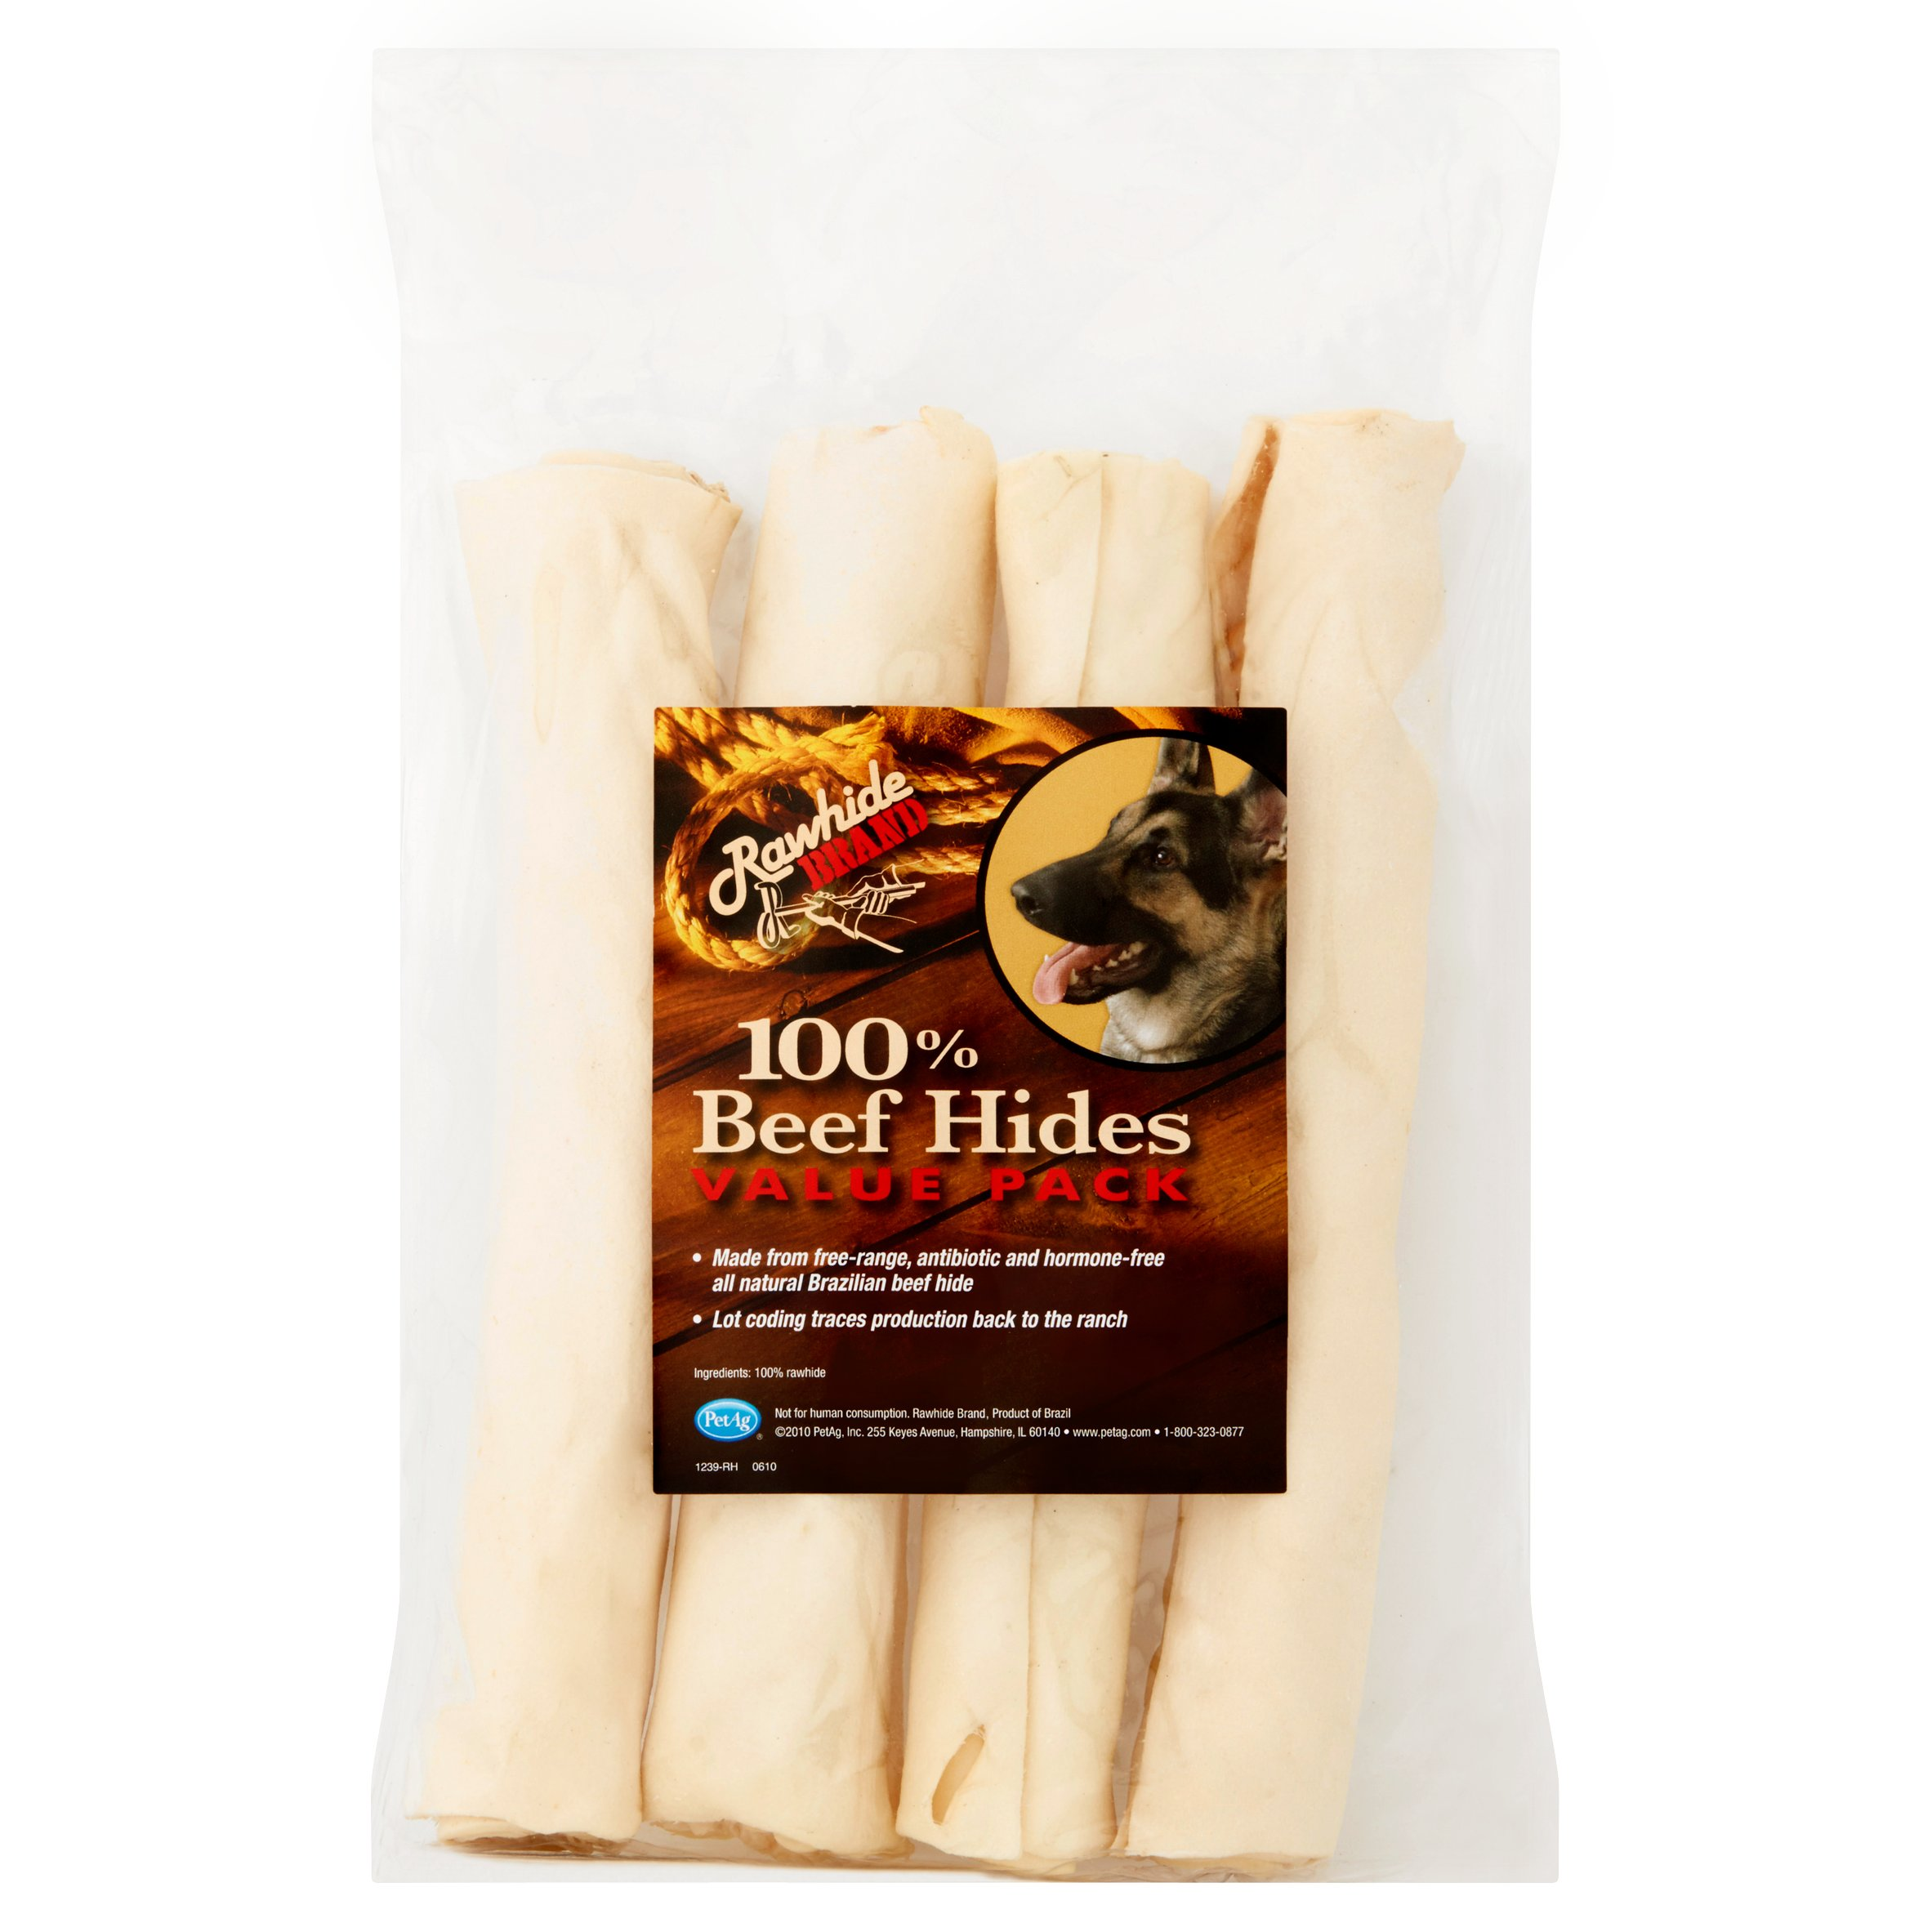 "PetAg Rawhide 100% Beef Hides Dog Treats, 9"", 4-ct."